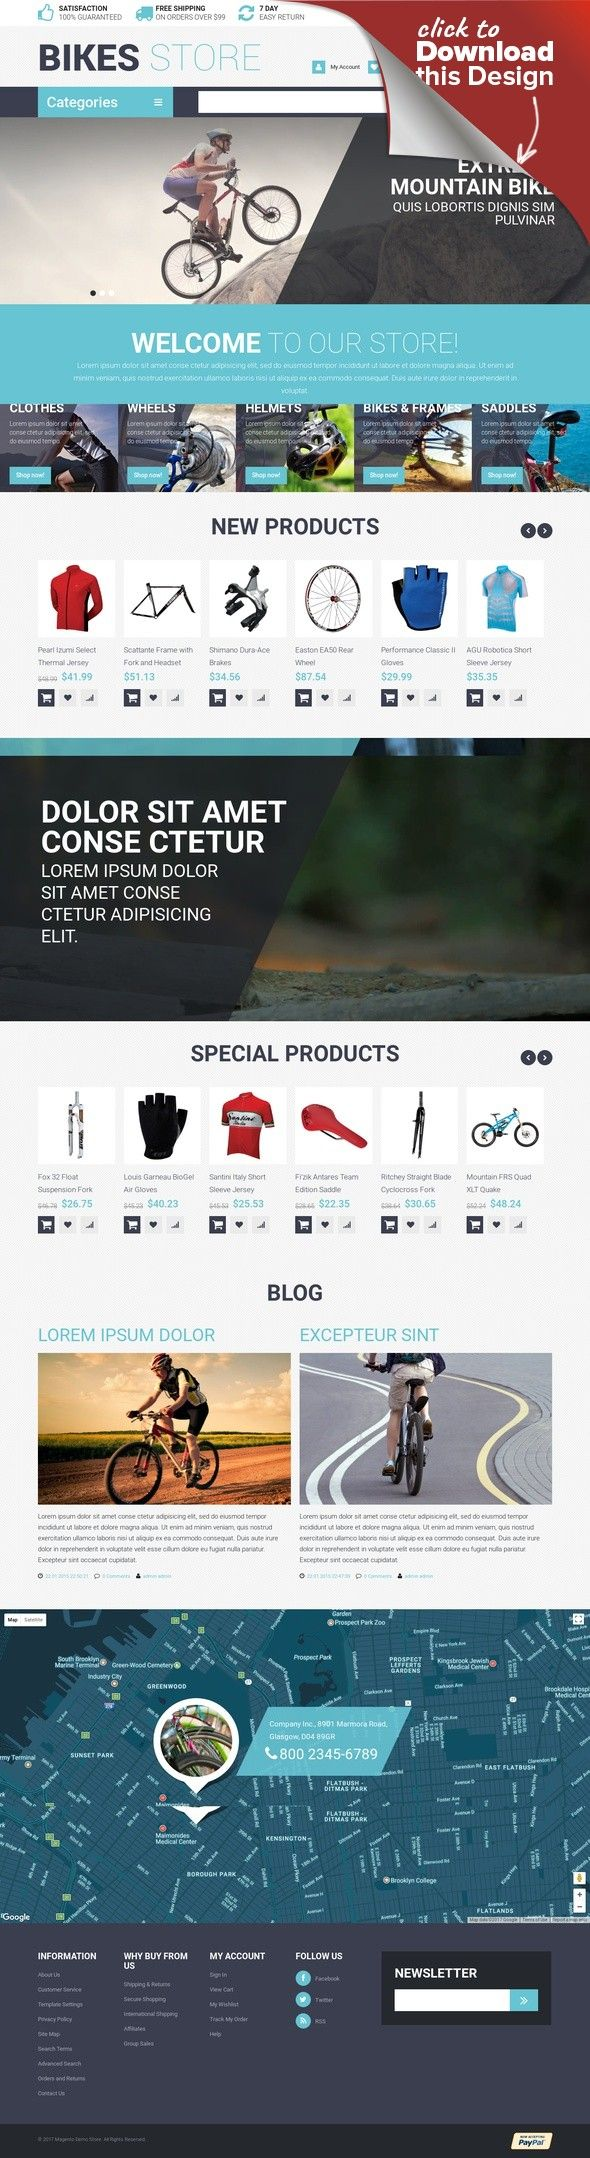 Cycling Store Magento Theme E-commerce Templates, Magento Themes, Sports, Outdoors & Travel, Sport Templates, More Sports, Cycling Templates